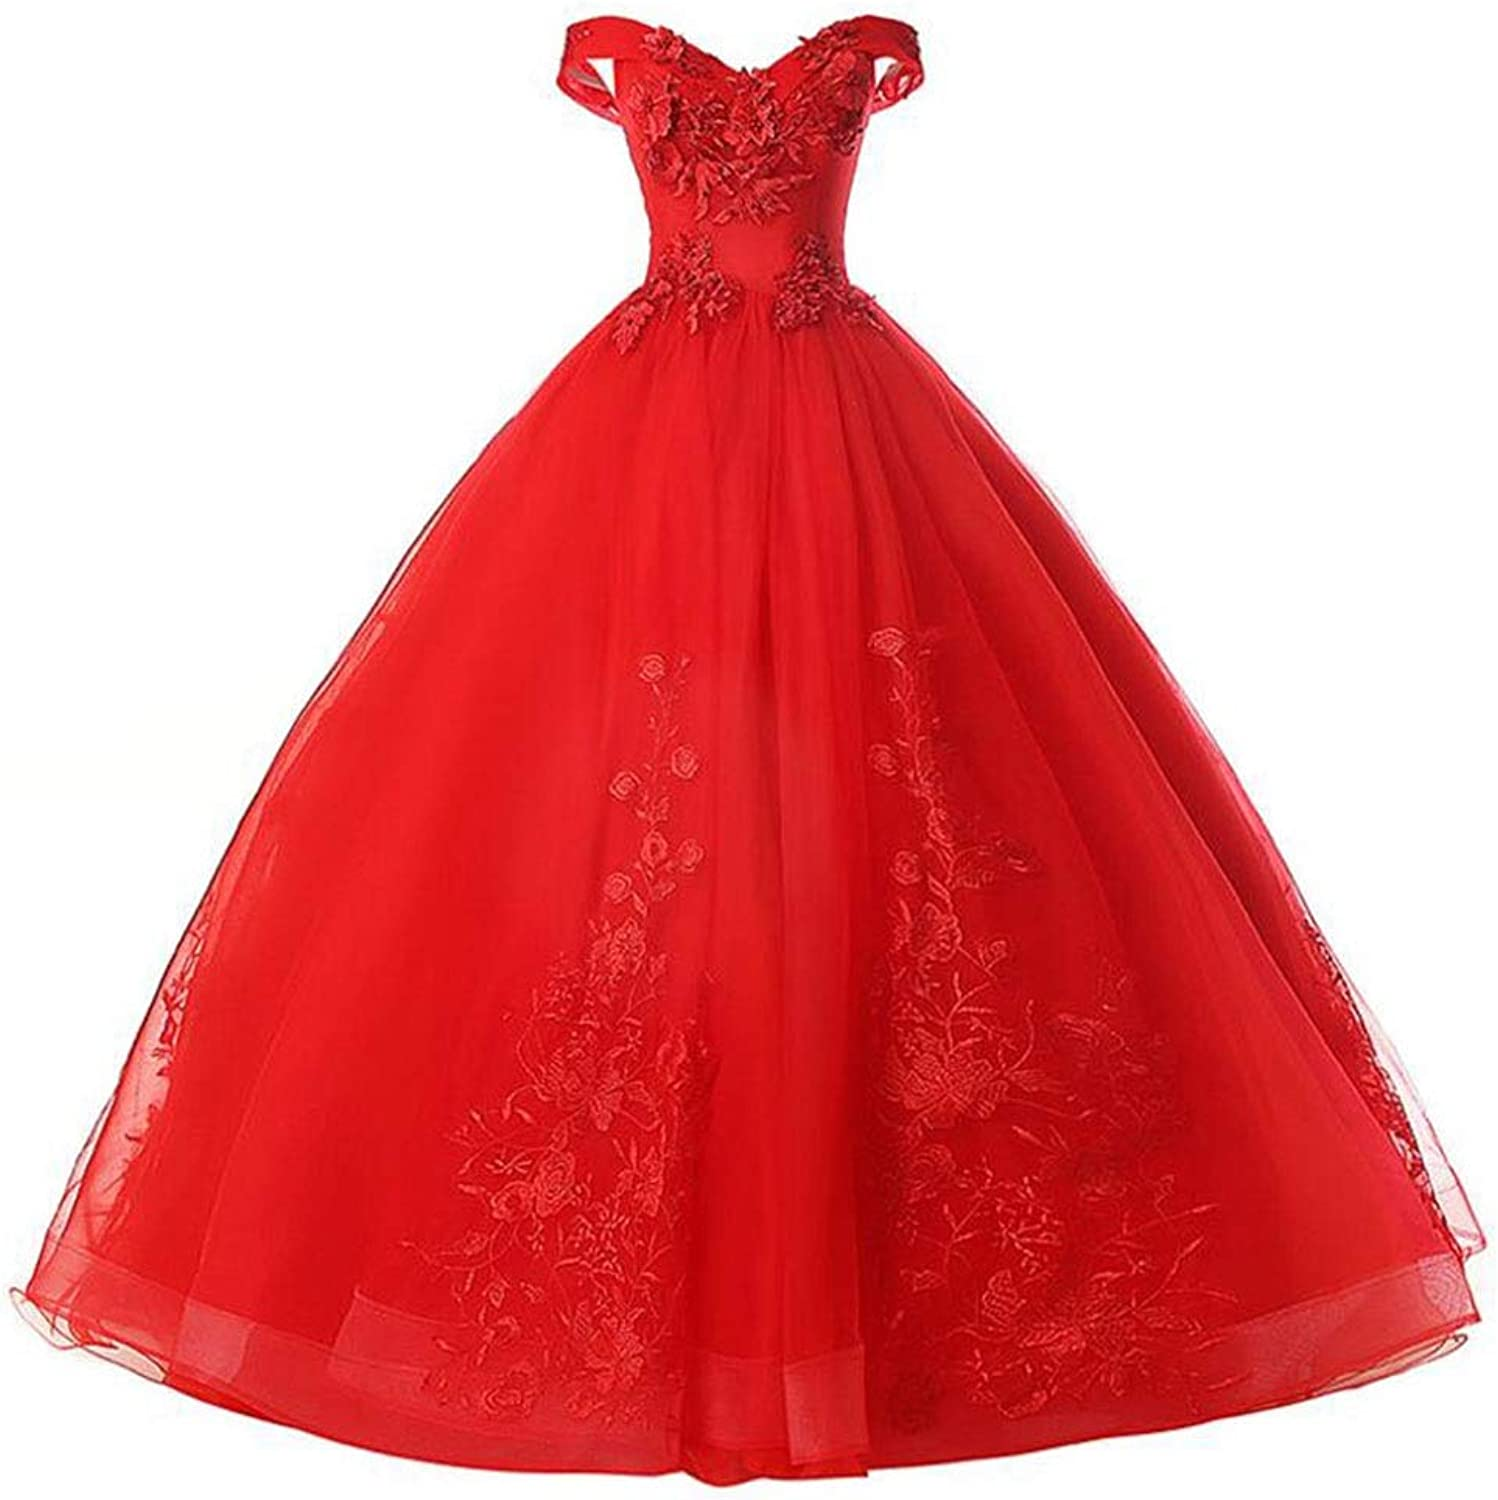 OneShoulder Wedding Bridal Gown Evening Dress Princess Dream Dress Tidy Out The Back of The Back Adjustable Wedding red (color   Red, Size   XXXL)